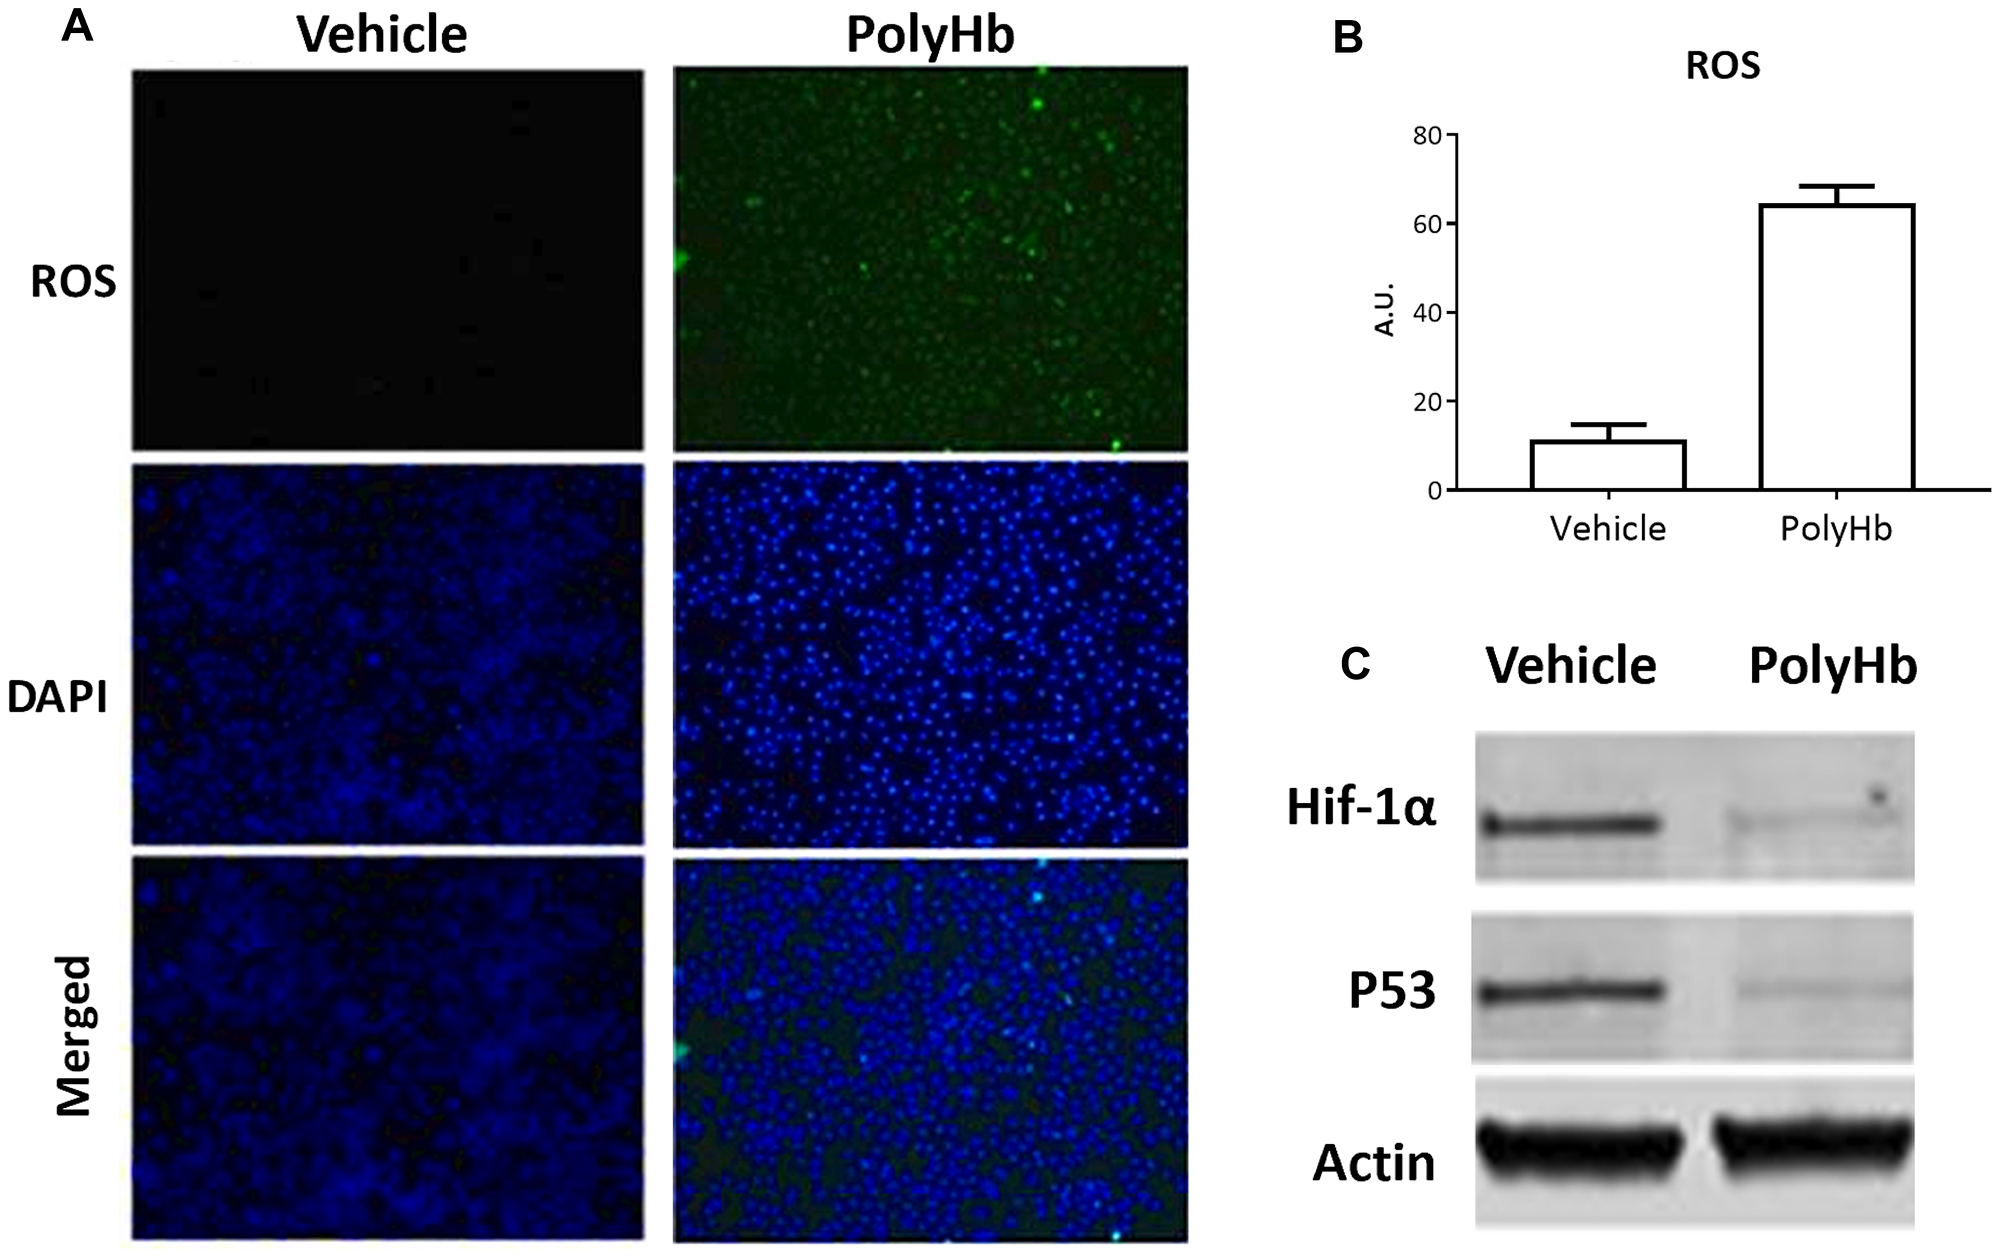 Effects of 0.05 g/dL PolyHb on ROS levels in A549 cells after 24 hours.